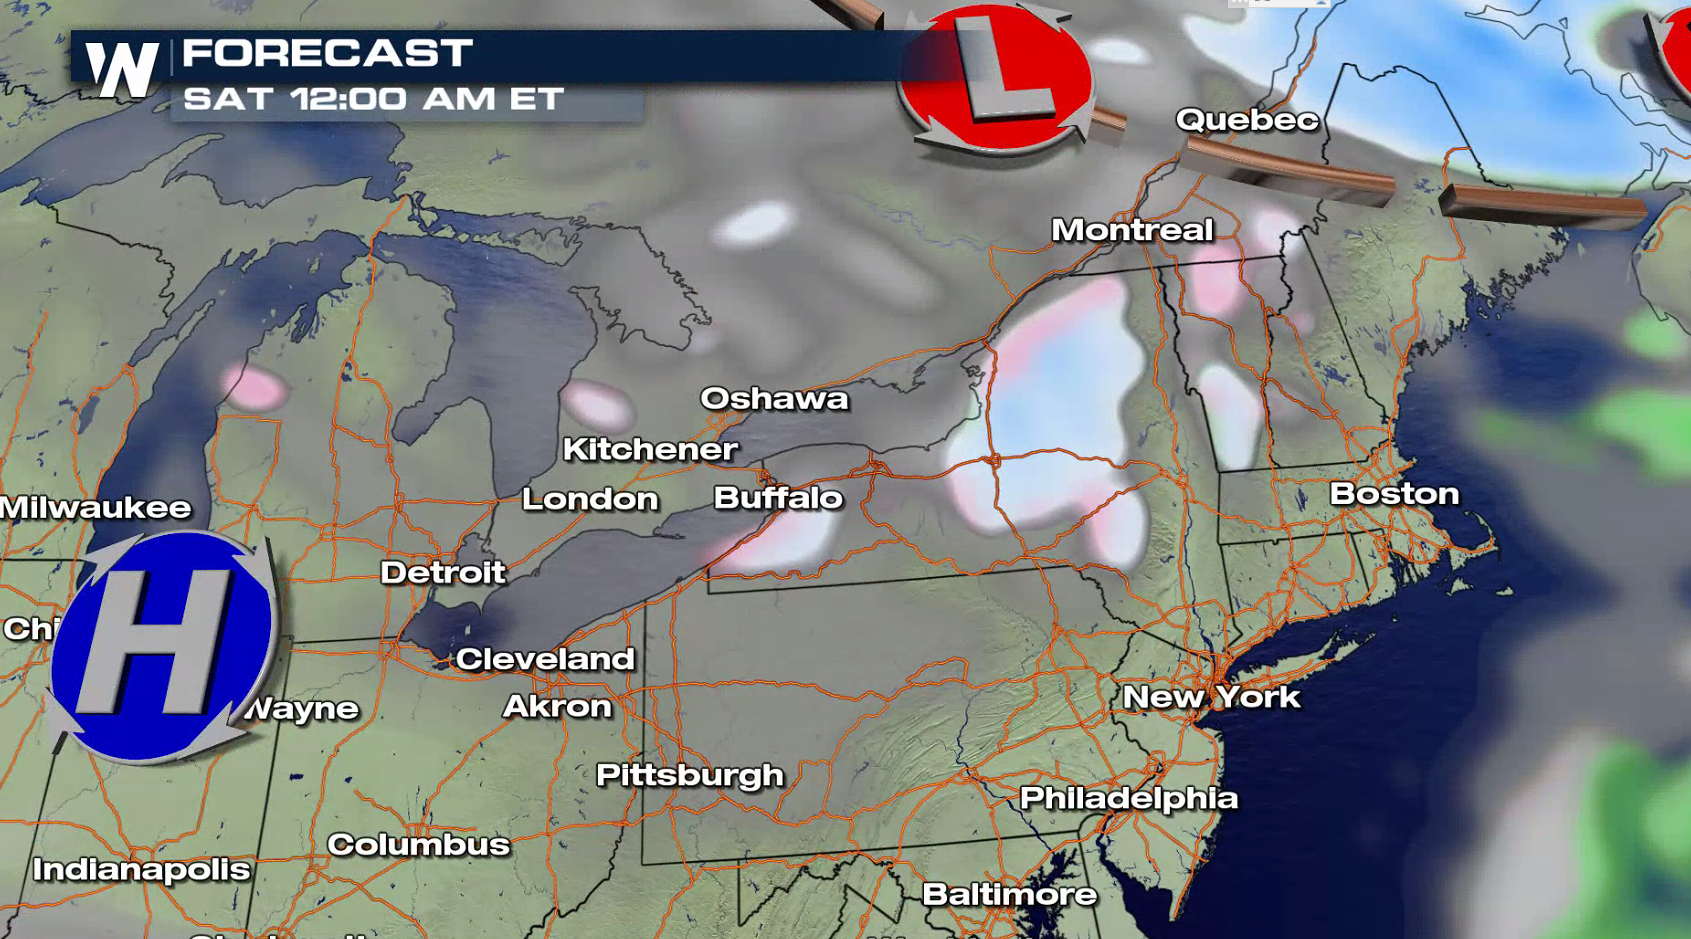 band of heavy lake effect snow in the great lakes